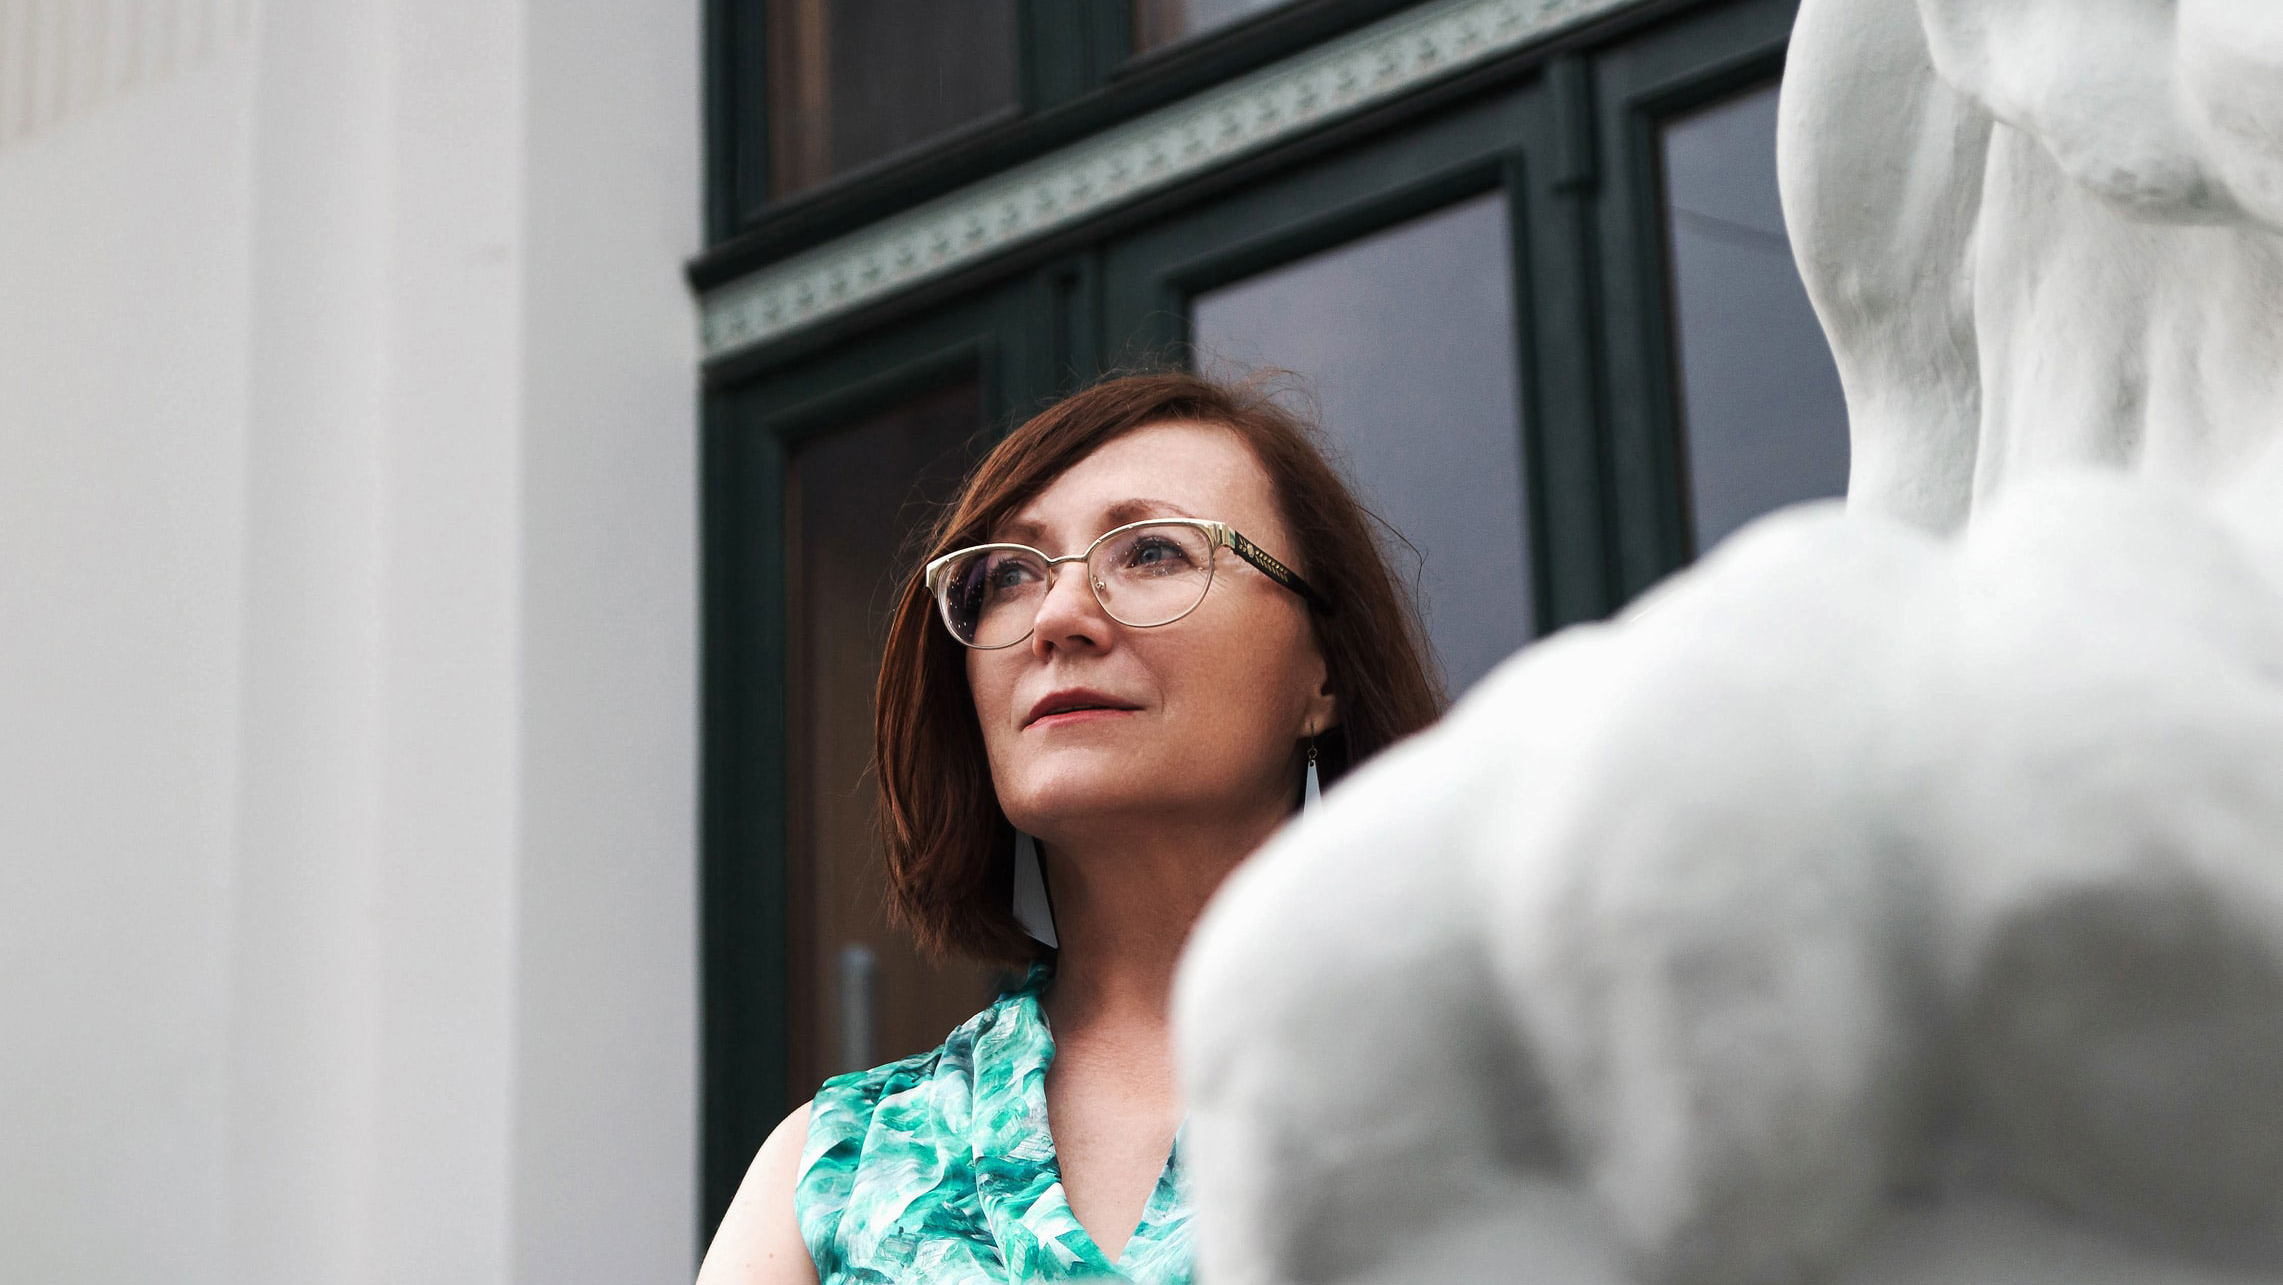 Woman with glasses looking straight ahead